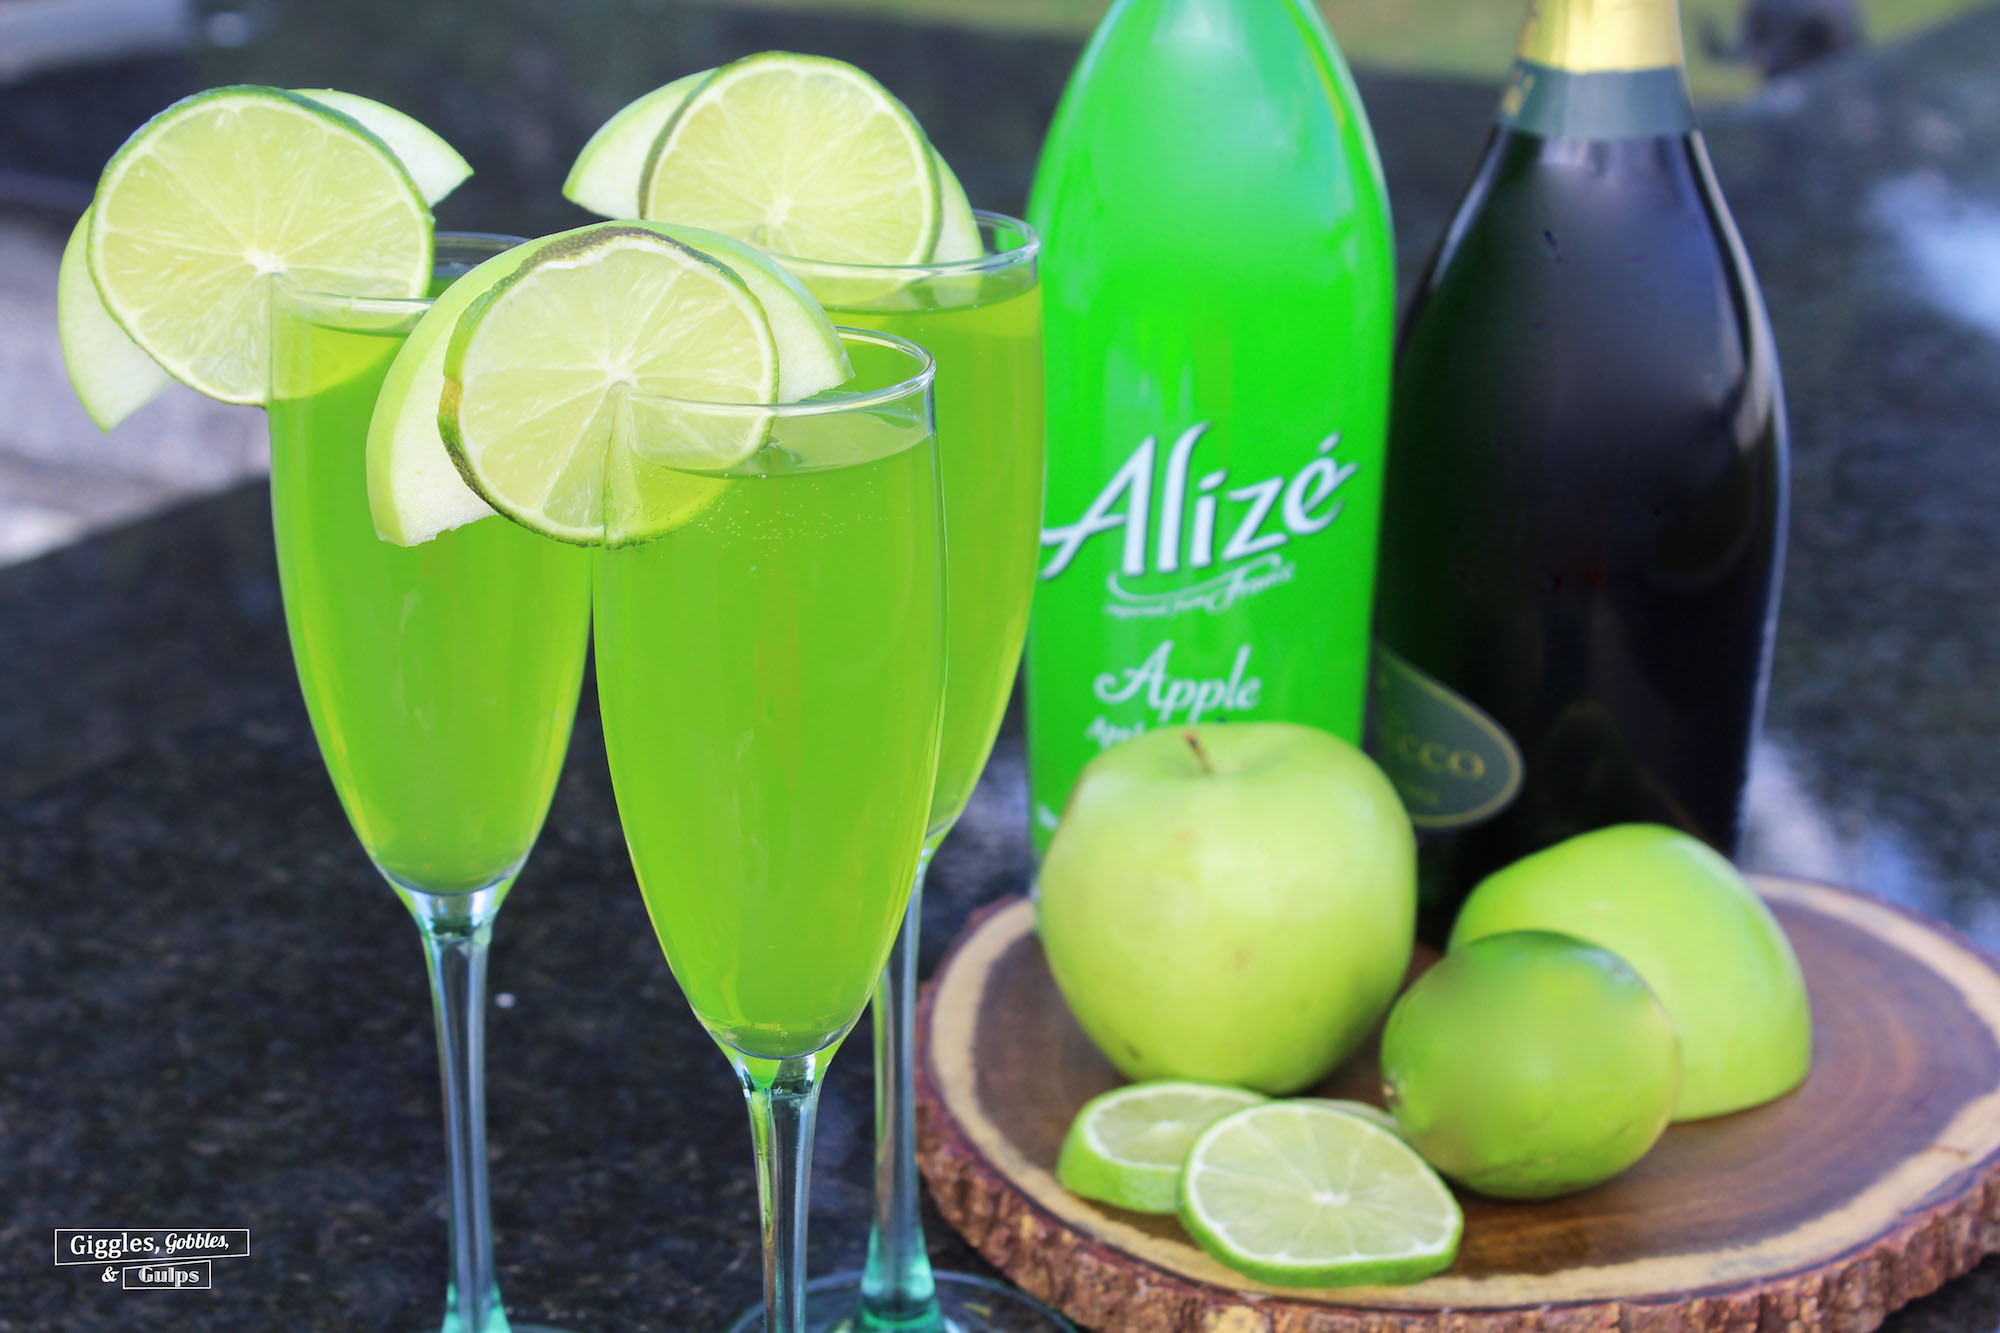 Alize Apple Champagne Cocktail Giggles Gobbles And Gulps 1,094,950 likes · 4,827 talking about this · 771 were here. alize apple champagne cocktail